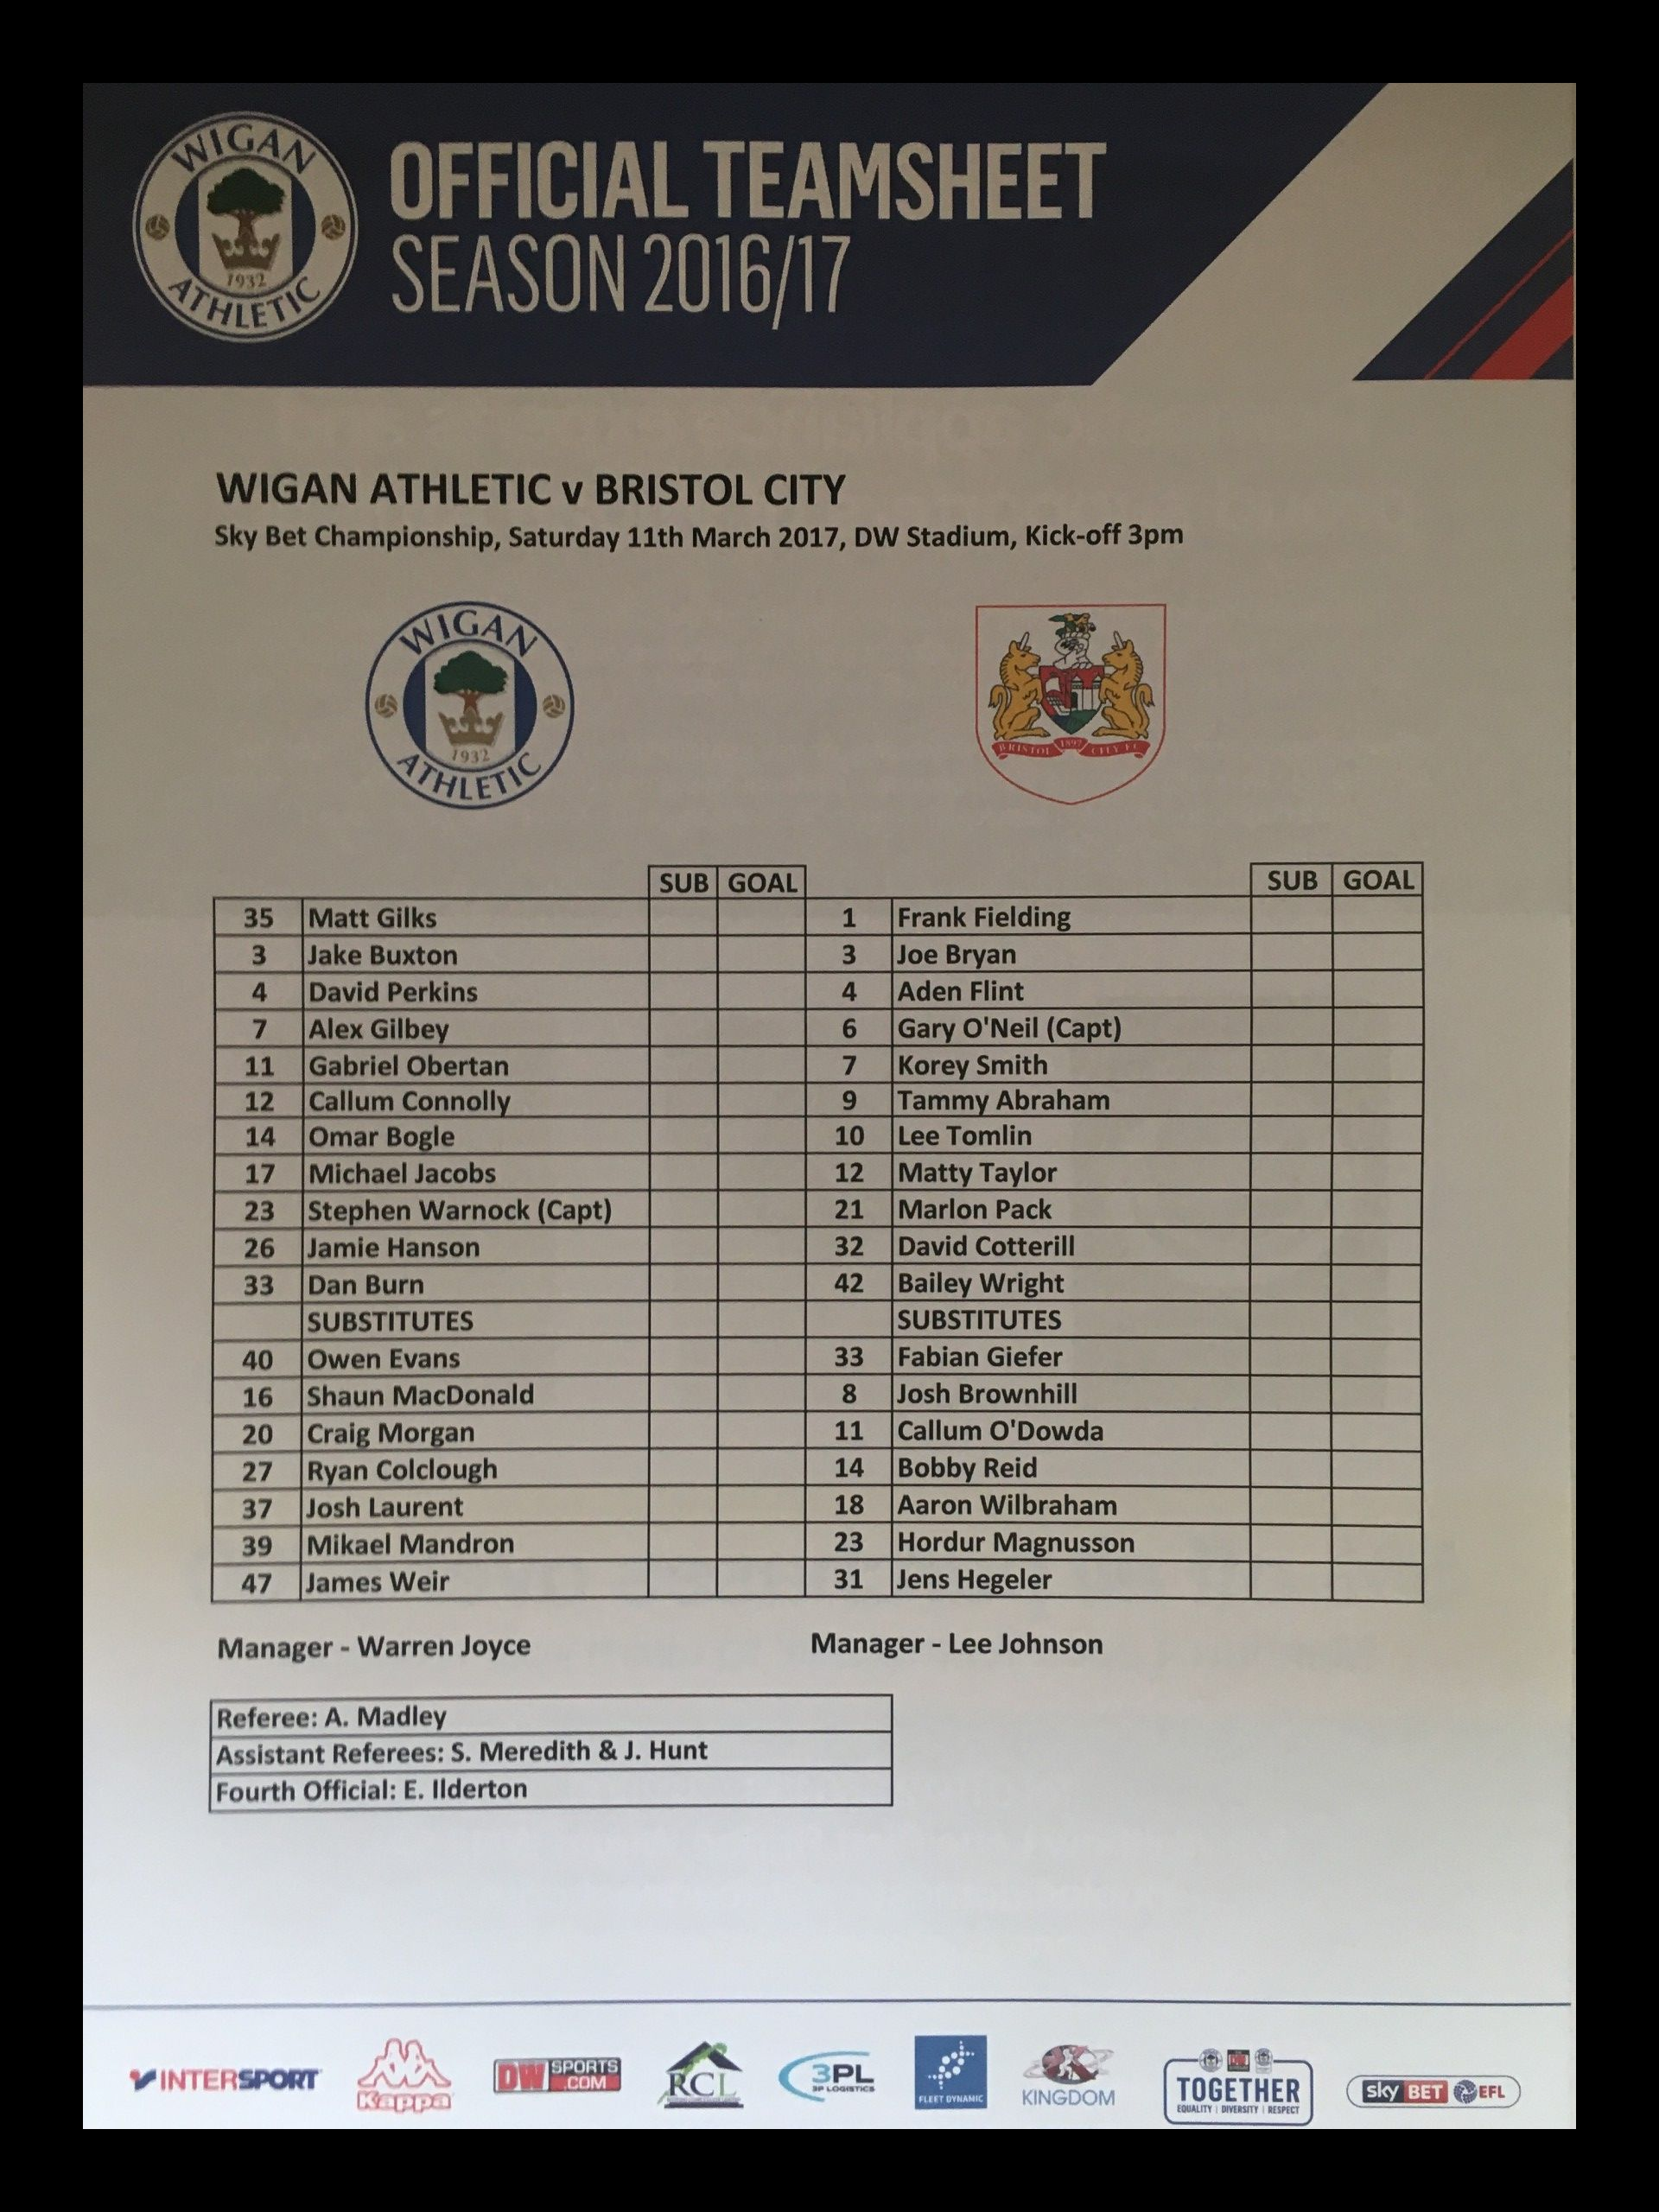 Wigan Athletic v Bristol City 11-03-17 Team Sheet